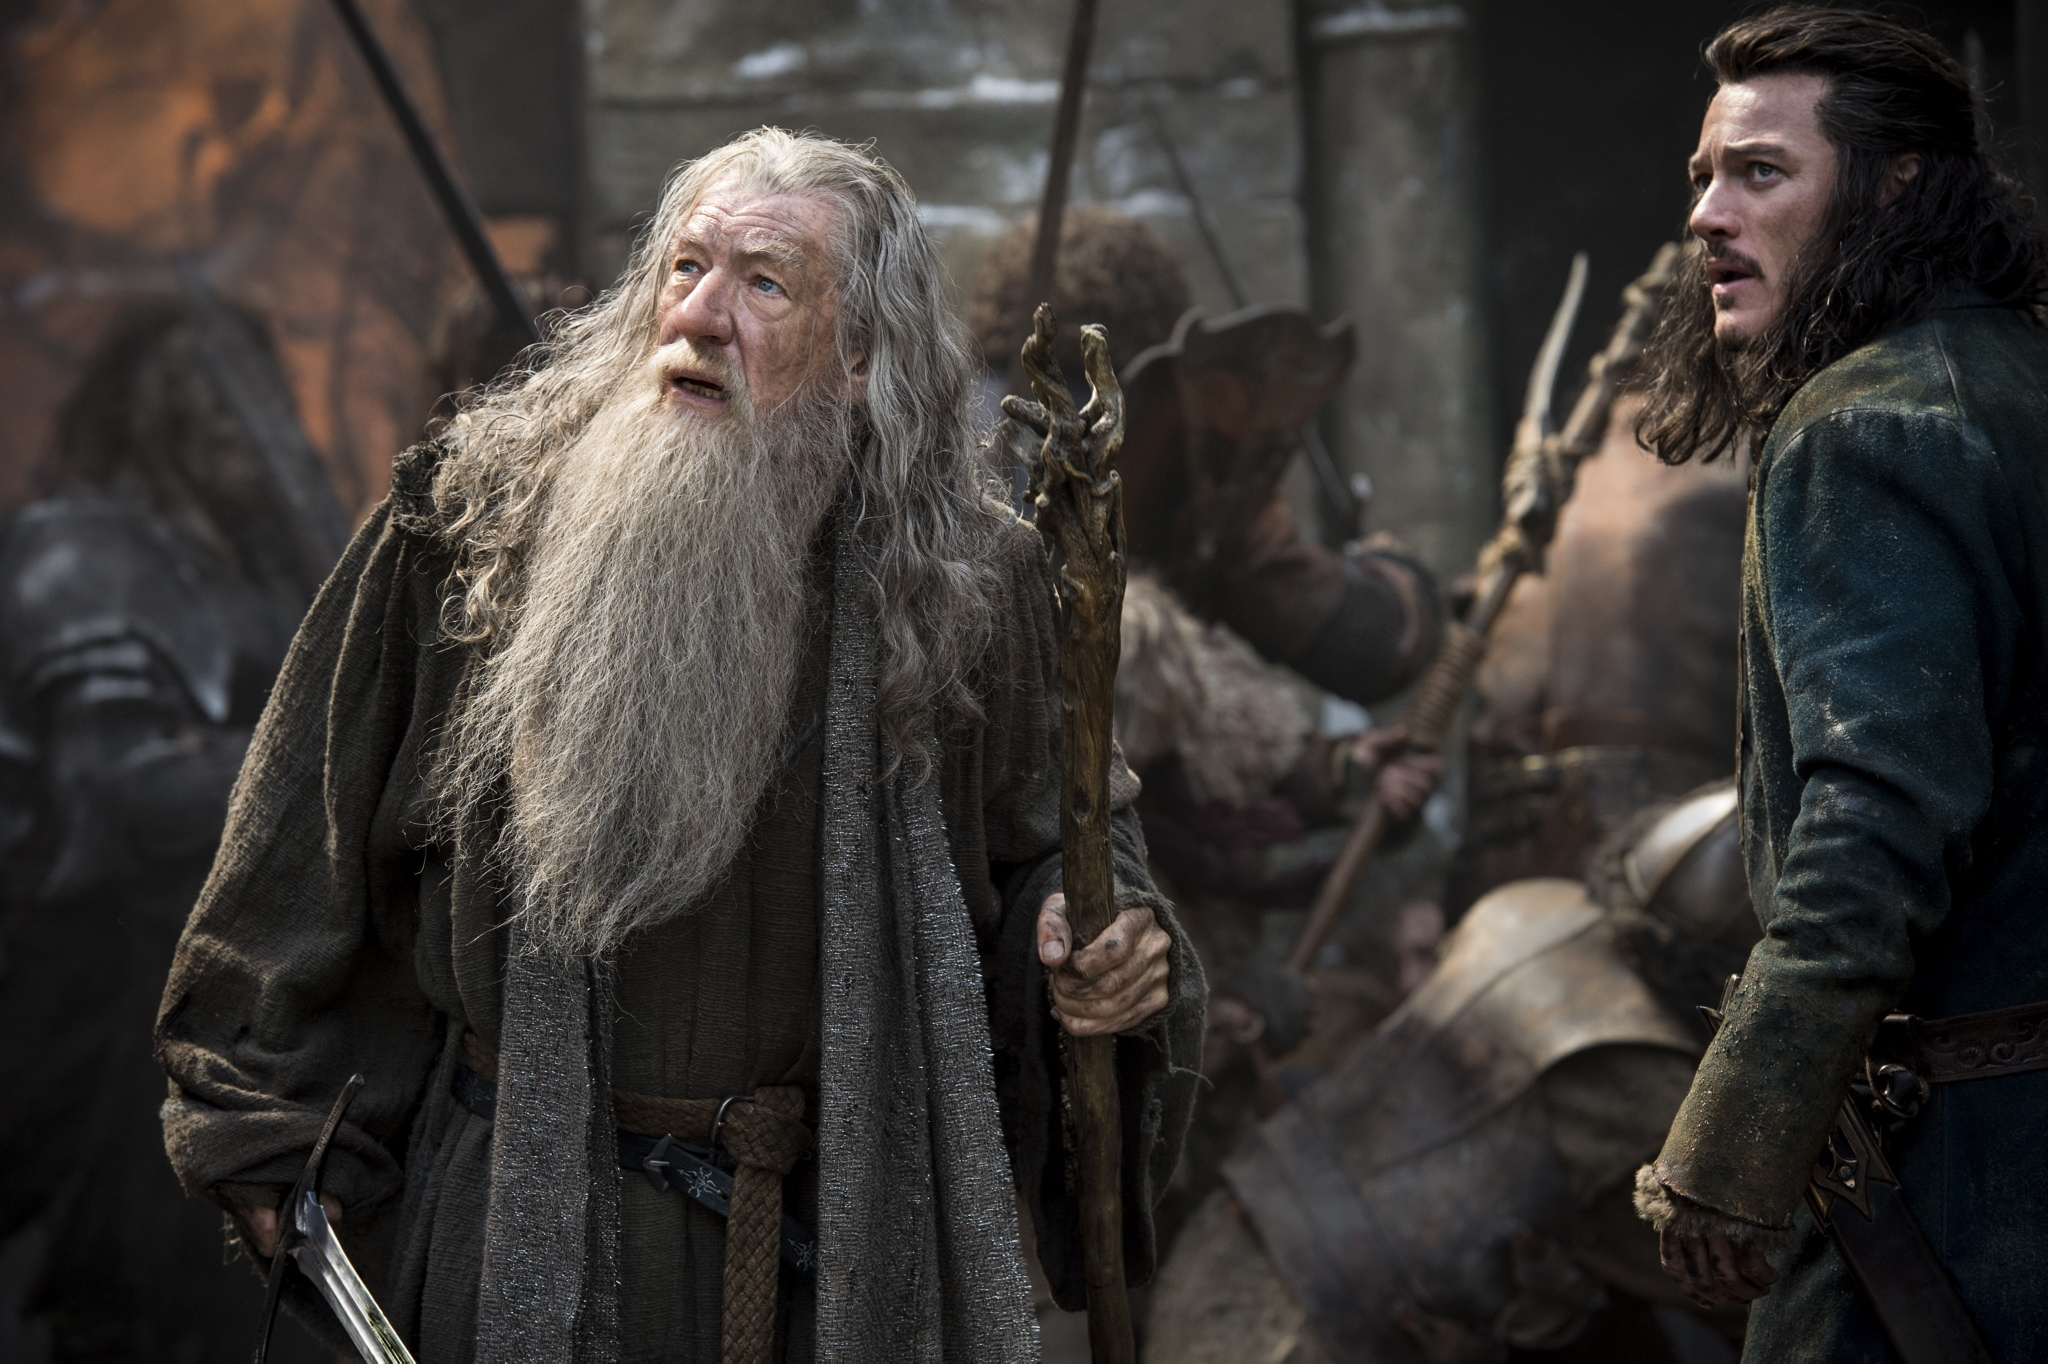 The Hobbit The Battle Of The Five Armies 2014 Directed By Peter Jackson Film Review